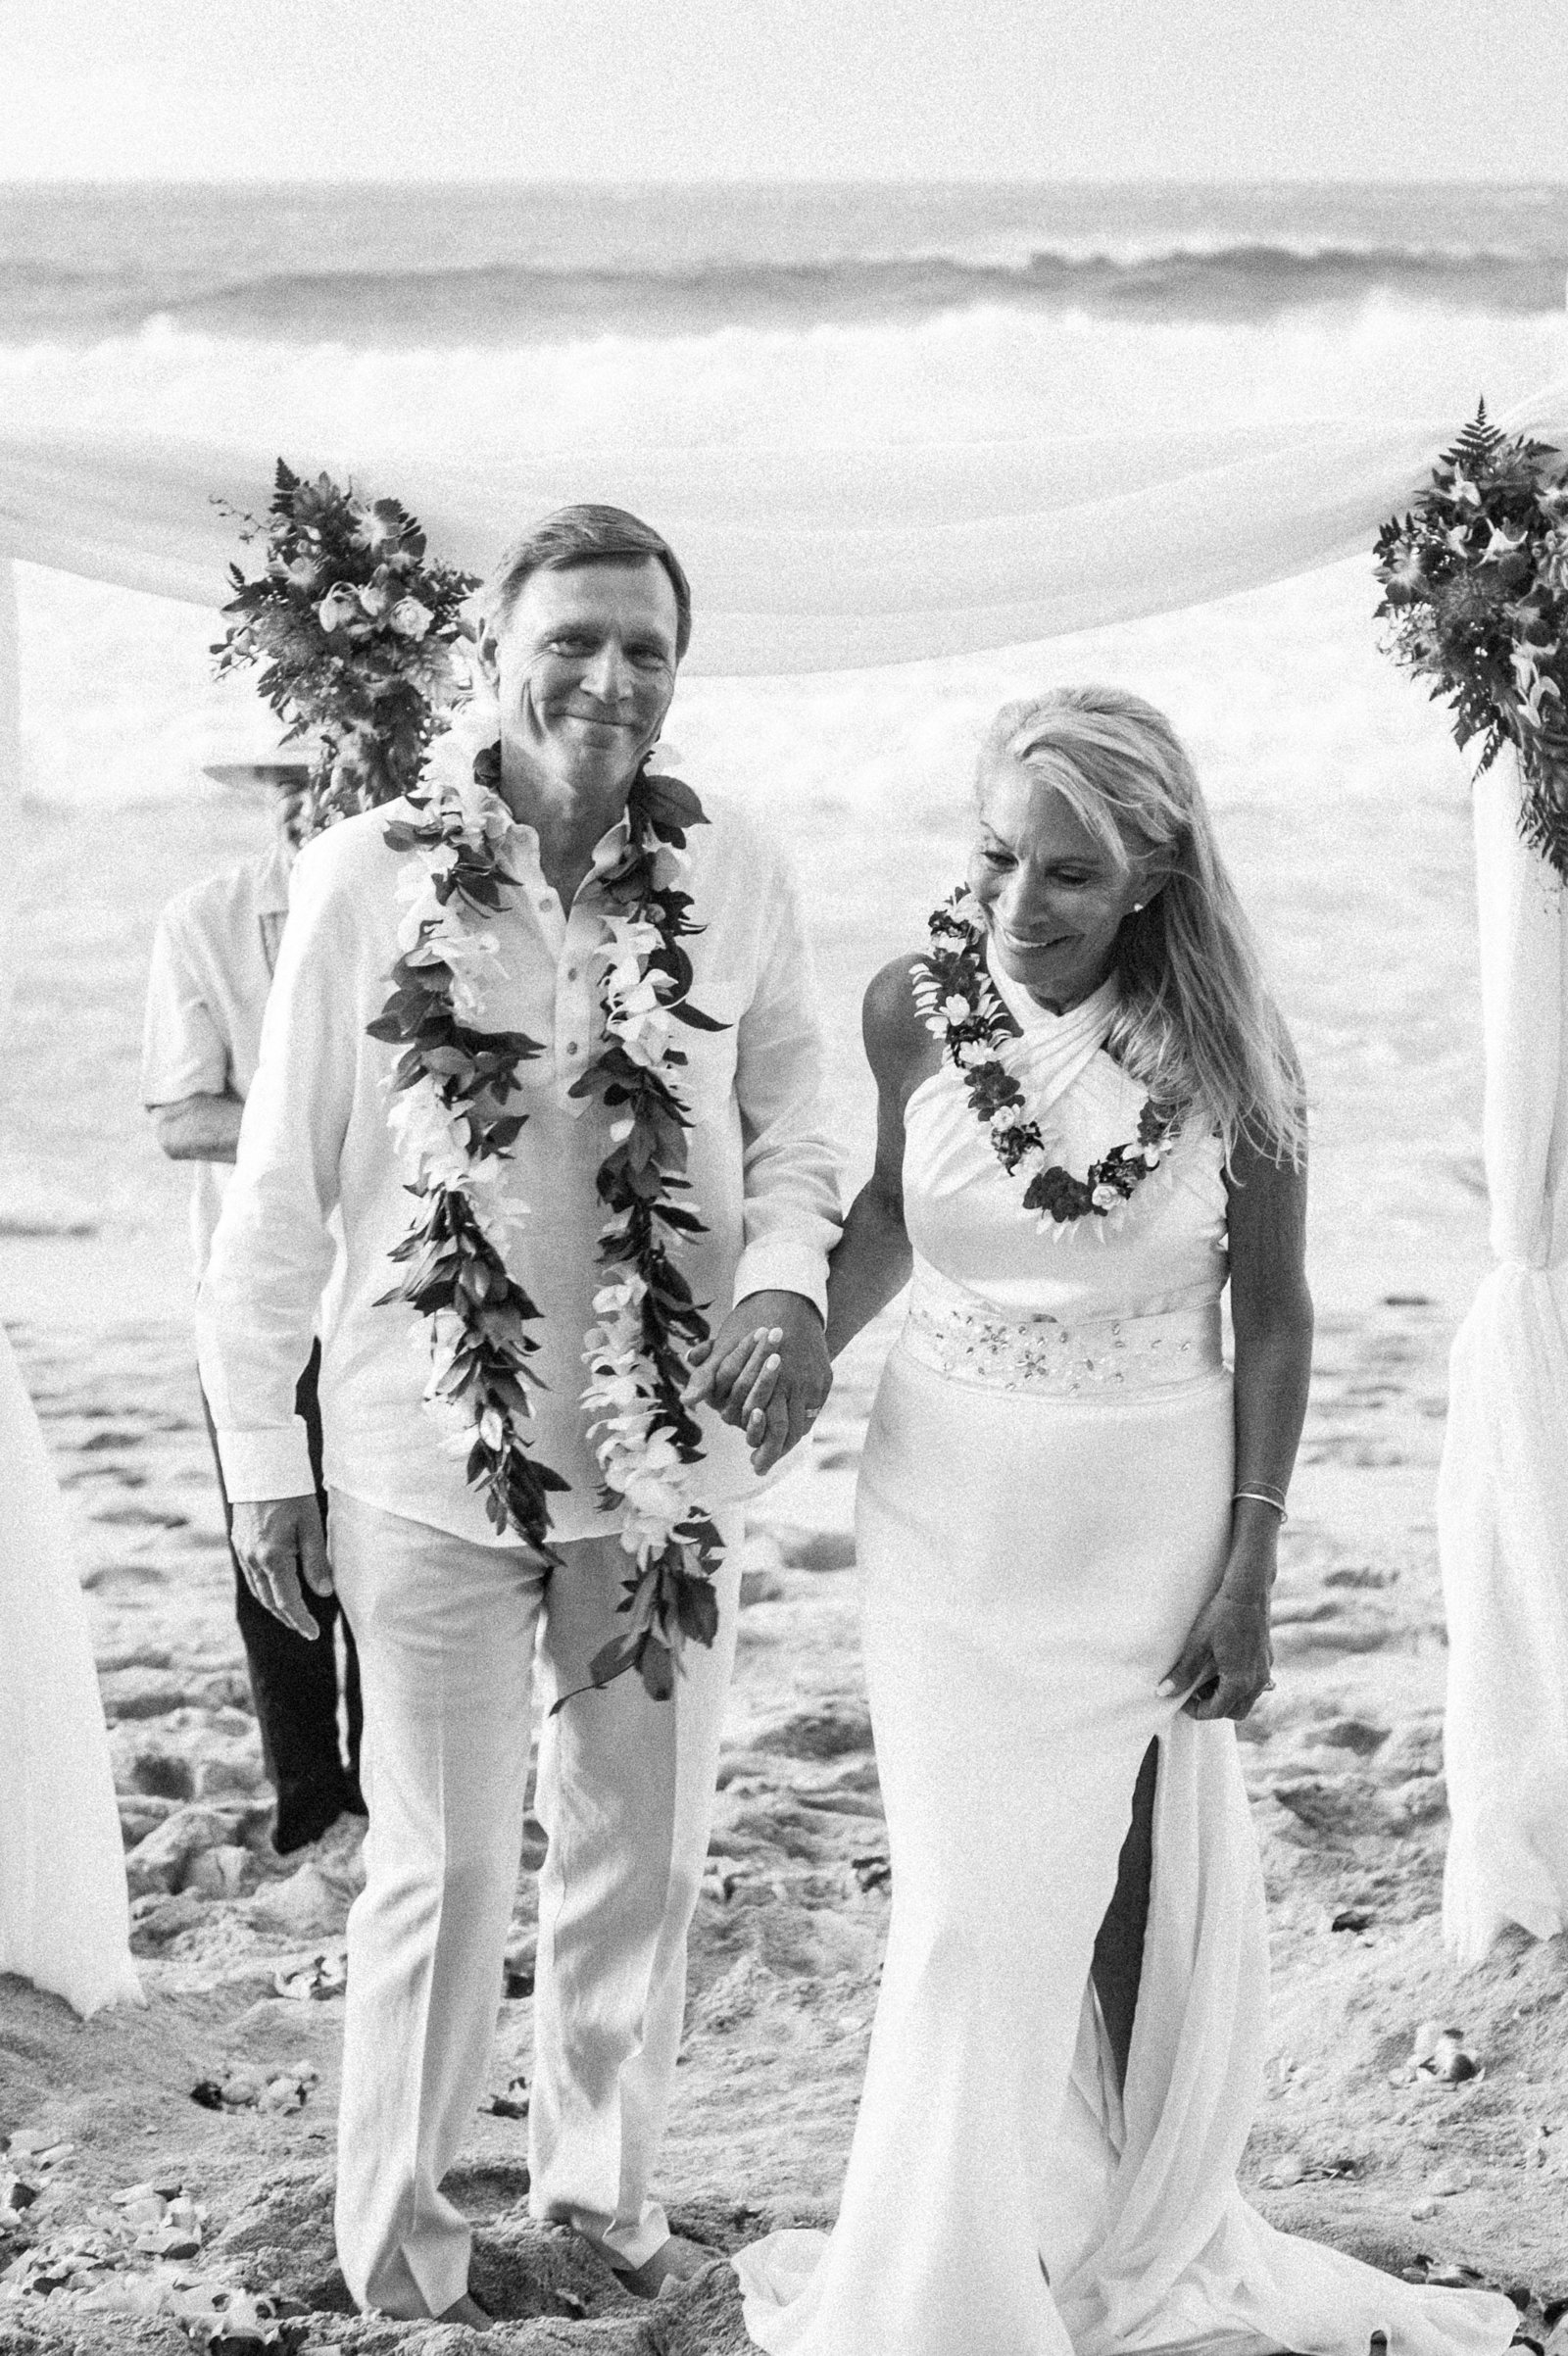 Candy-and-Dave-Hawaii-Wedding-Melissa-Desjardins-Photography-8